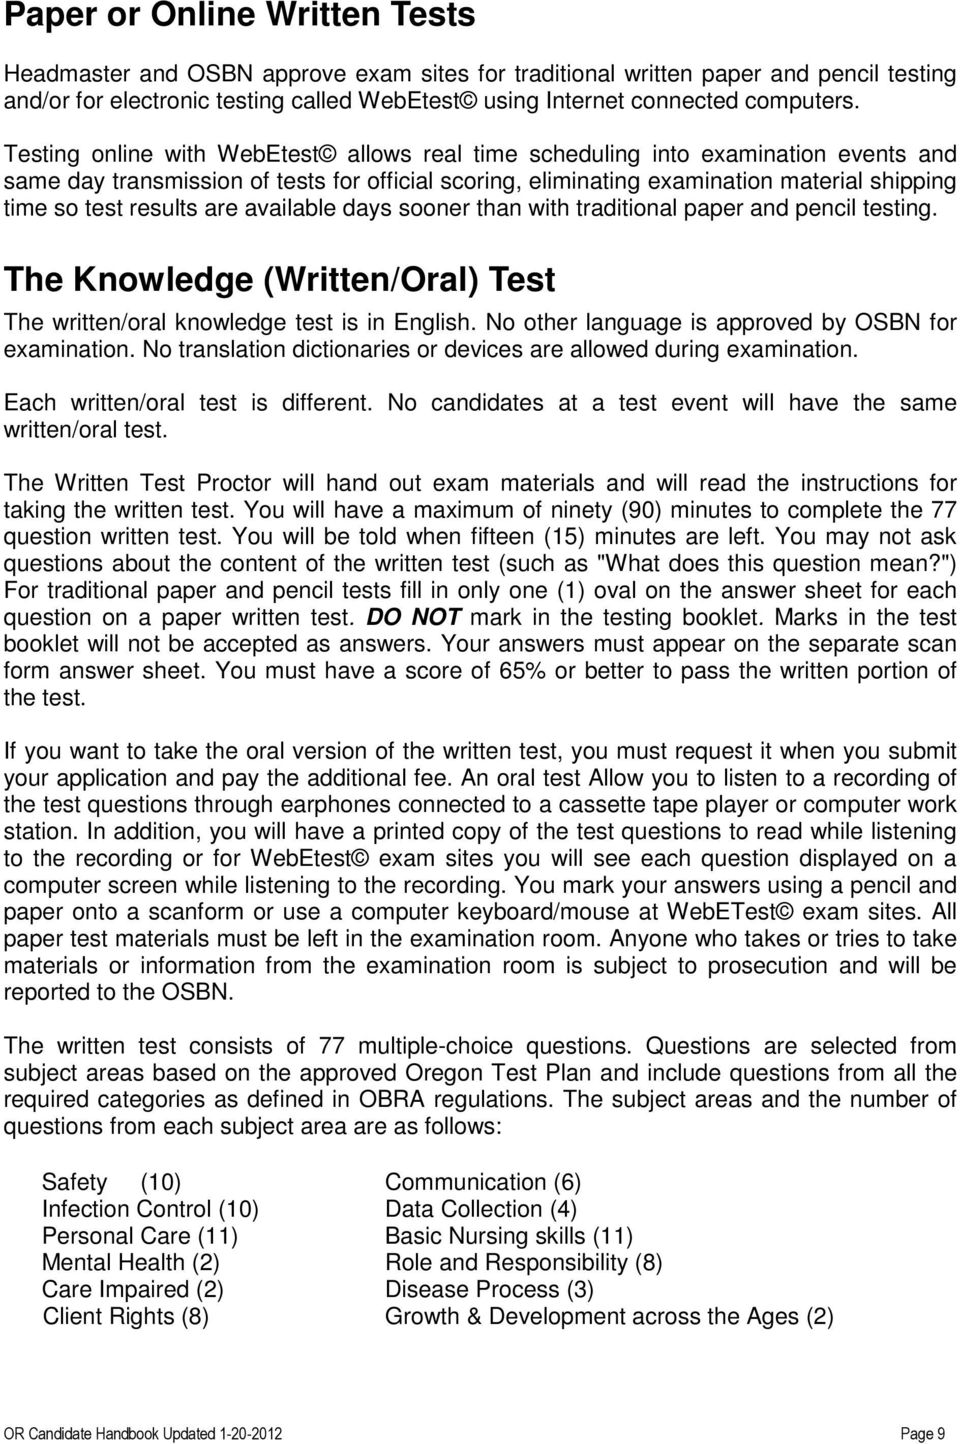 results are available days sooner than with traditional paper and pencil testing. The Knowledge (Written/Oral) Test The written/oral knowledge test is in English.